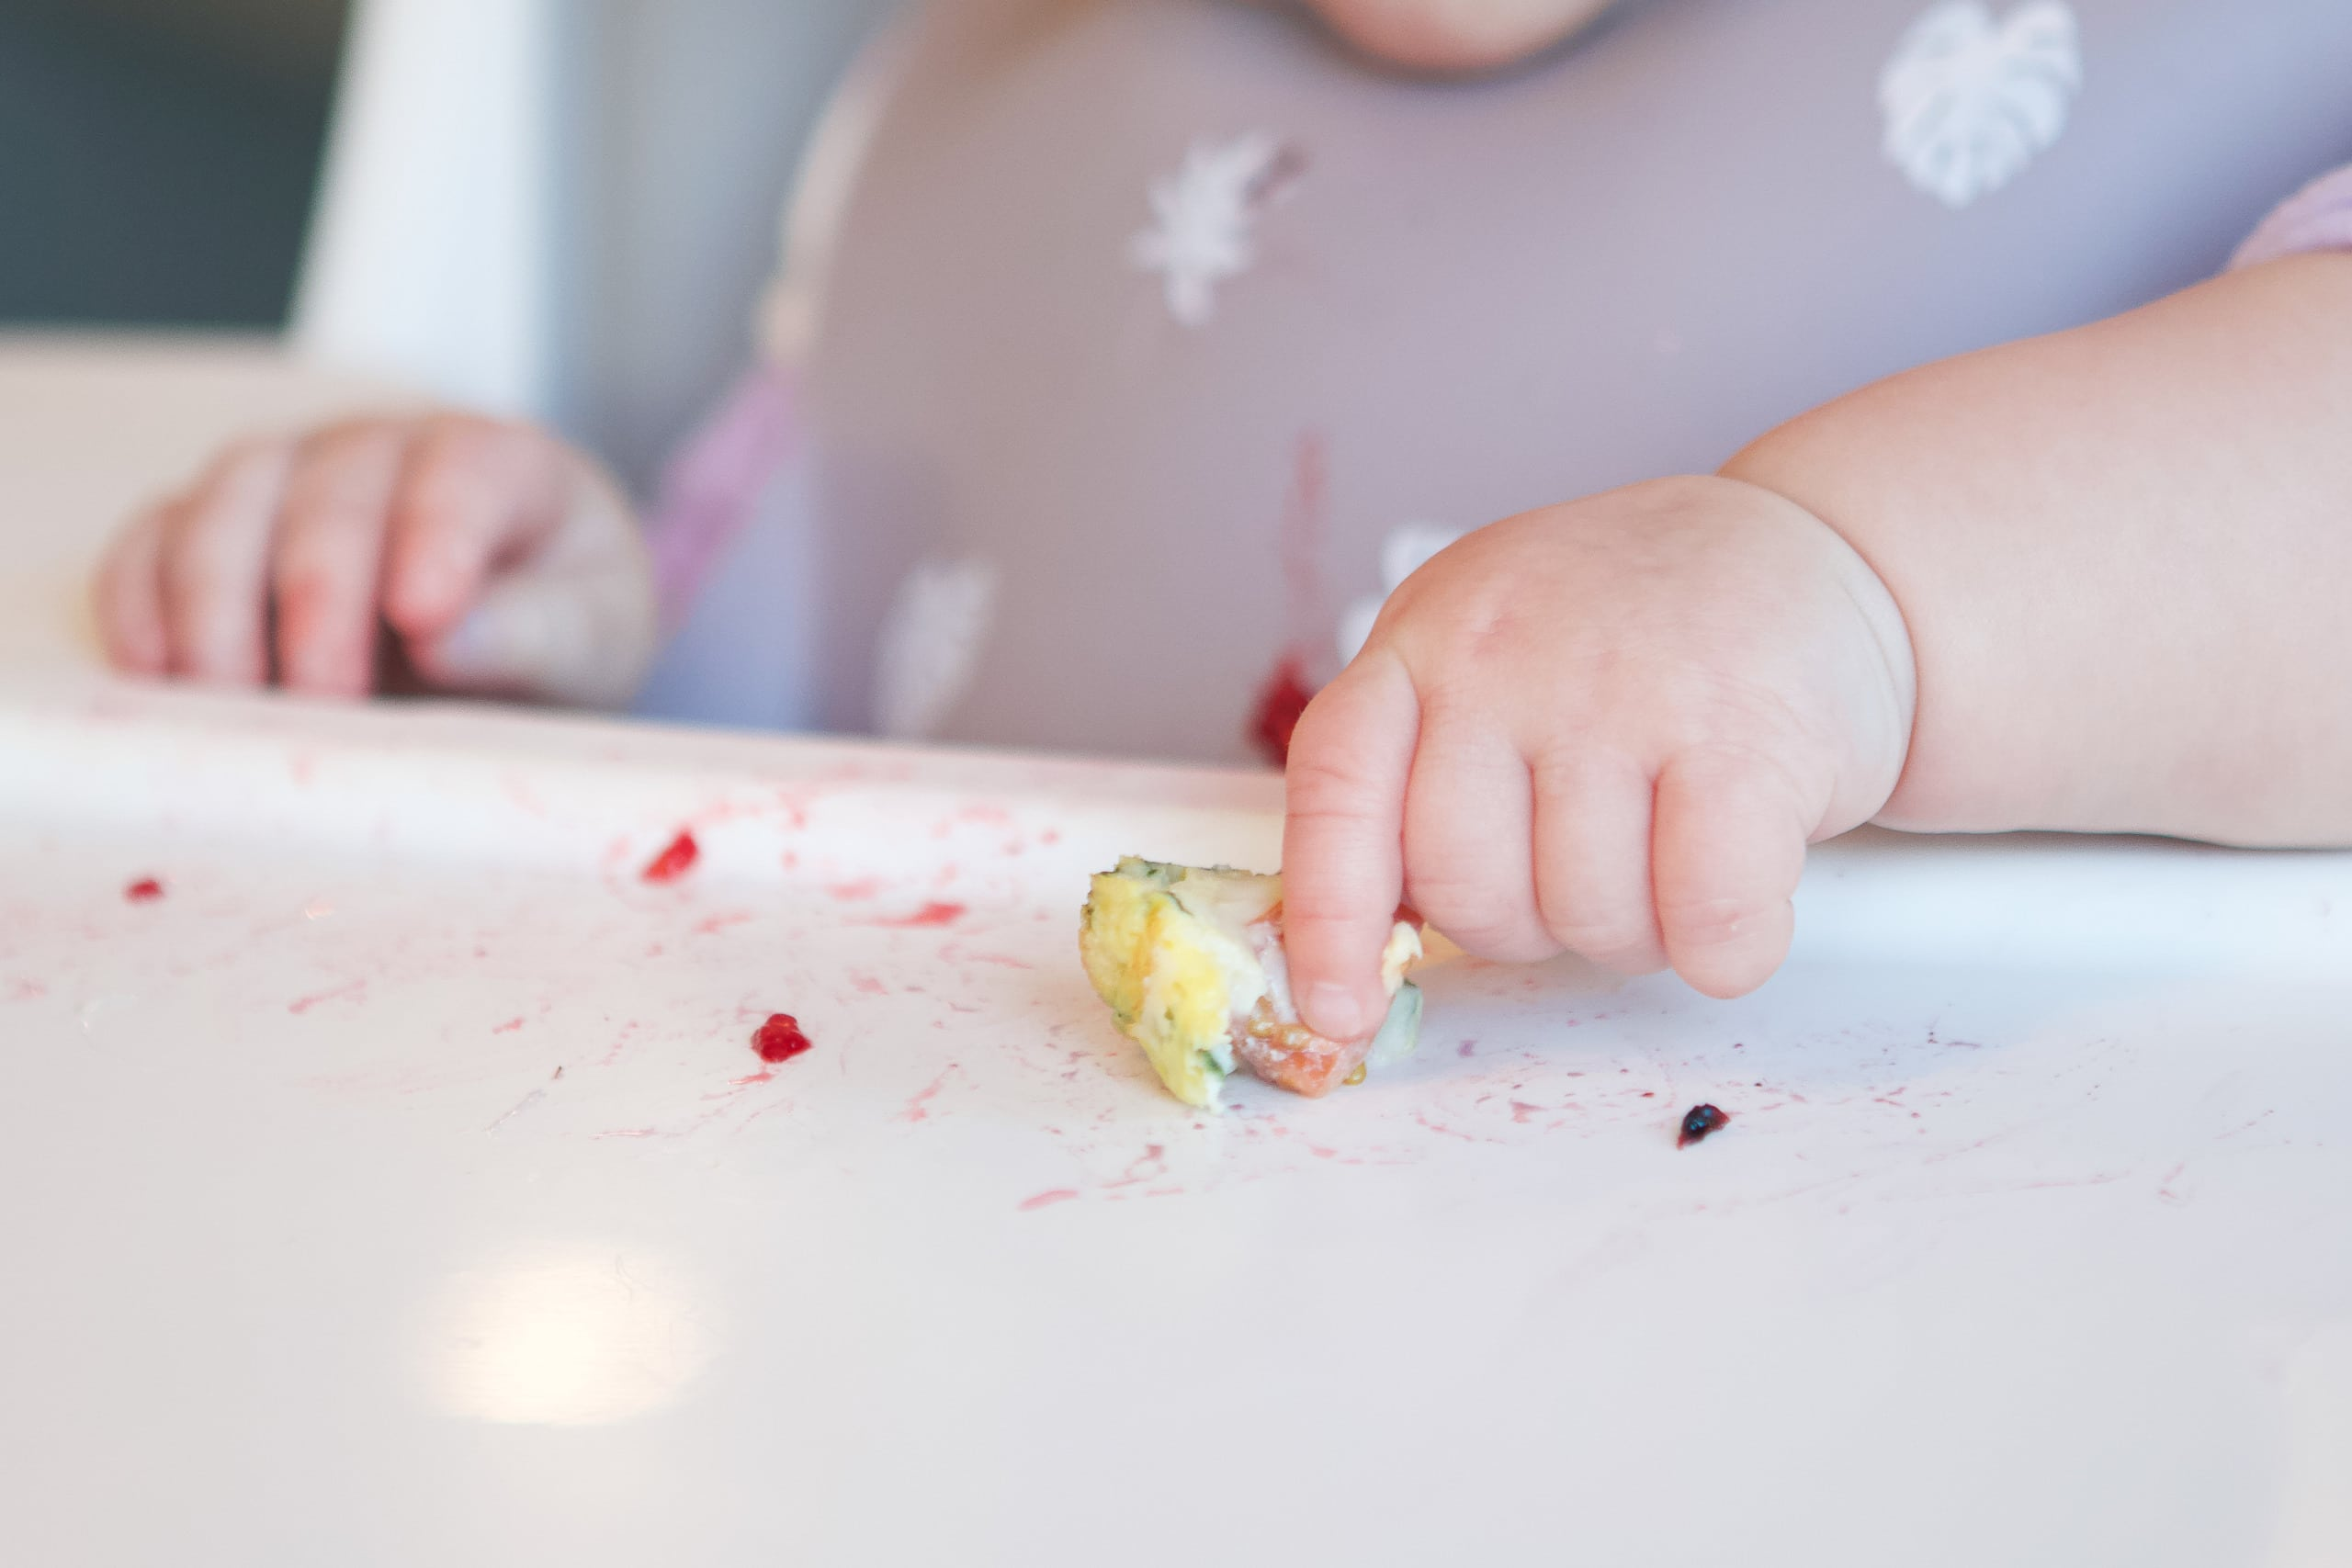 Rory doing baby led weaning and using her pincer grasp